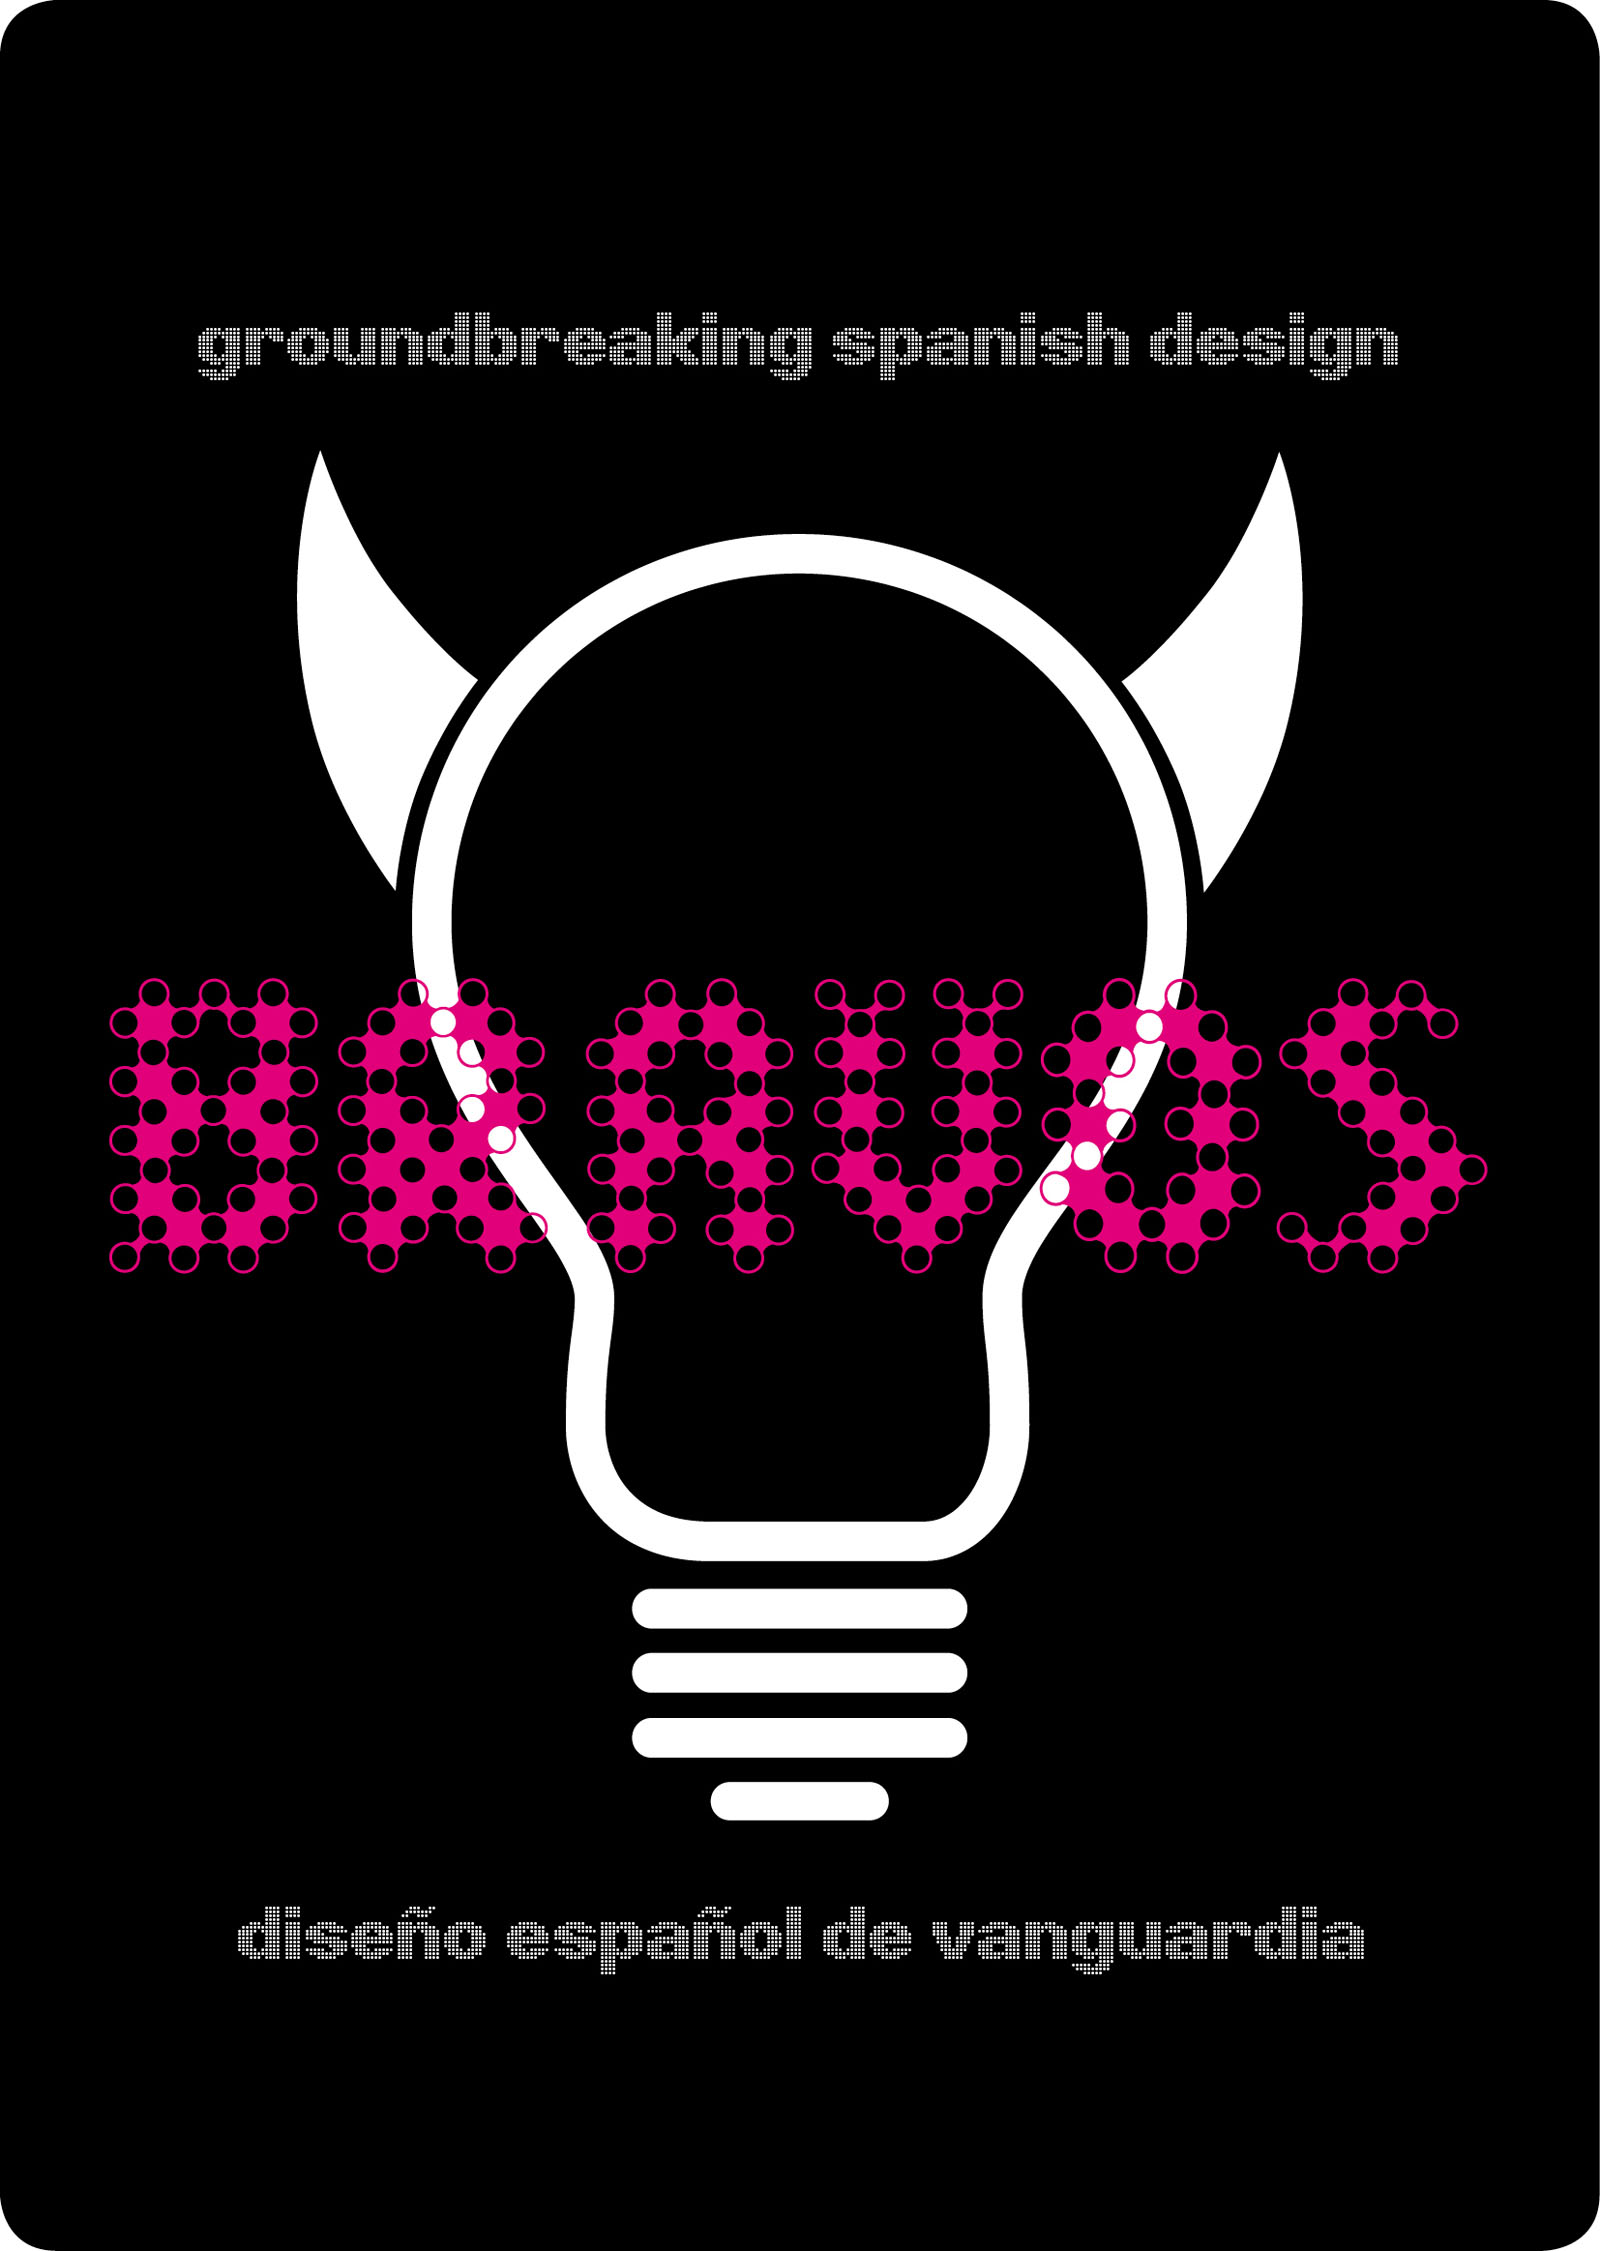 "<a href=""http://www.american.edu/cas/museum/gallery/BRAVOS-groundbreaking-spanish-design.cfm"">BRAVOS: Groundbreaking Spanish Design</a> will be on view at the American University Museum's Katzen Arts Center April 4th through May 15th."